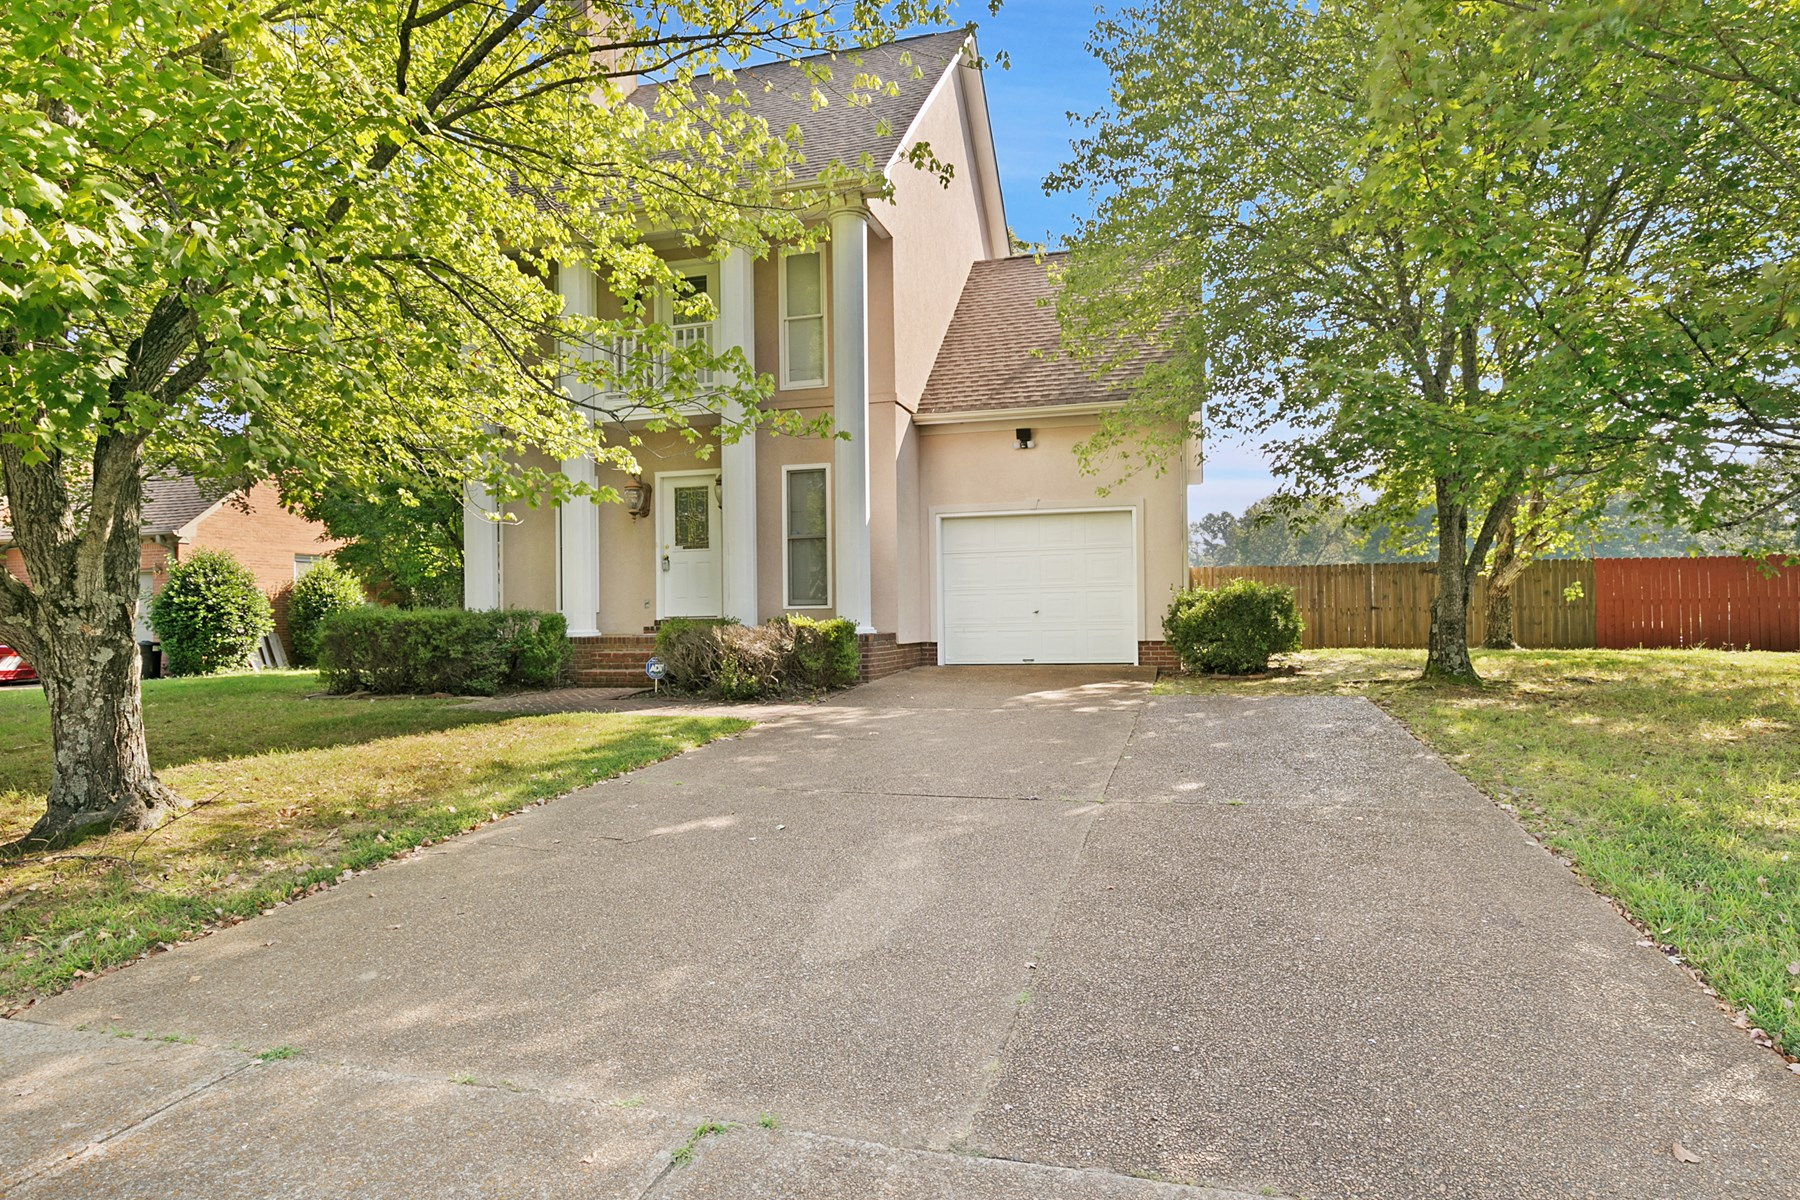 Freshly Painted Home For Sale in the Heart of Jackson TN